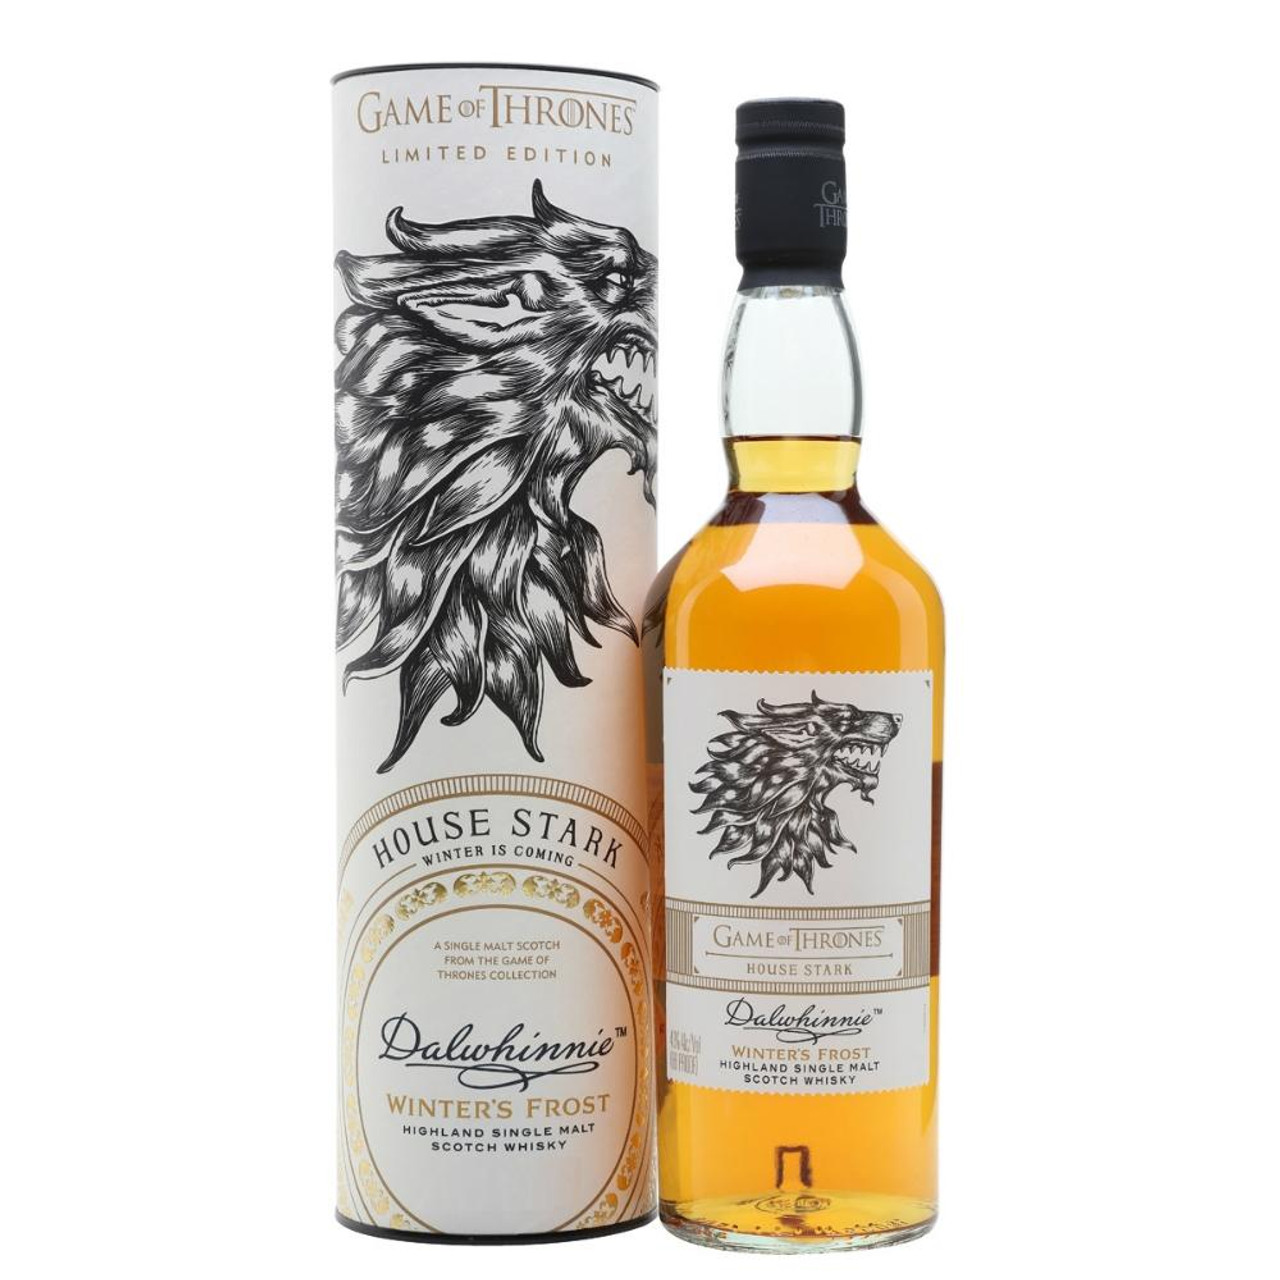 A non-age-statement single malt from the Highlands, representing House Stark and featuring a fearsome direwolf on the label. Diageo explains that this whisky from Dalwhinnie, located at one of the highest and coldest distillery sites in Scotland, is shaped by extreme conditions, just as the Starks' qualities of resilience and strength are shaped by their home of Winterfell in the North.